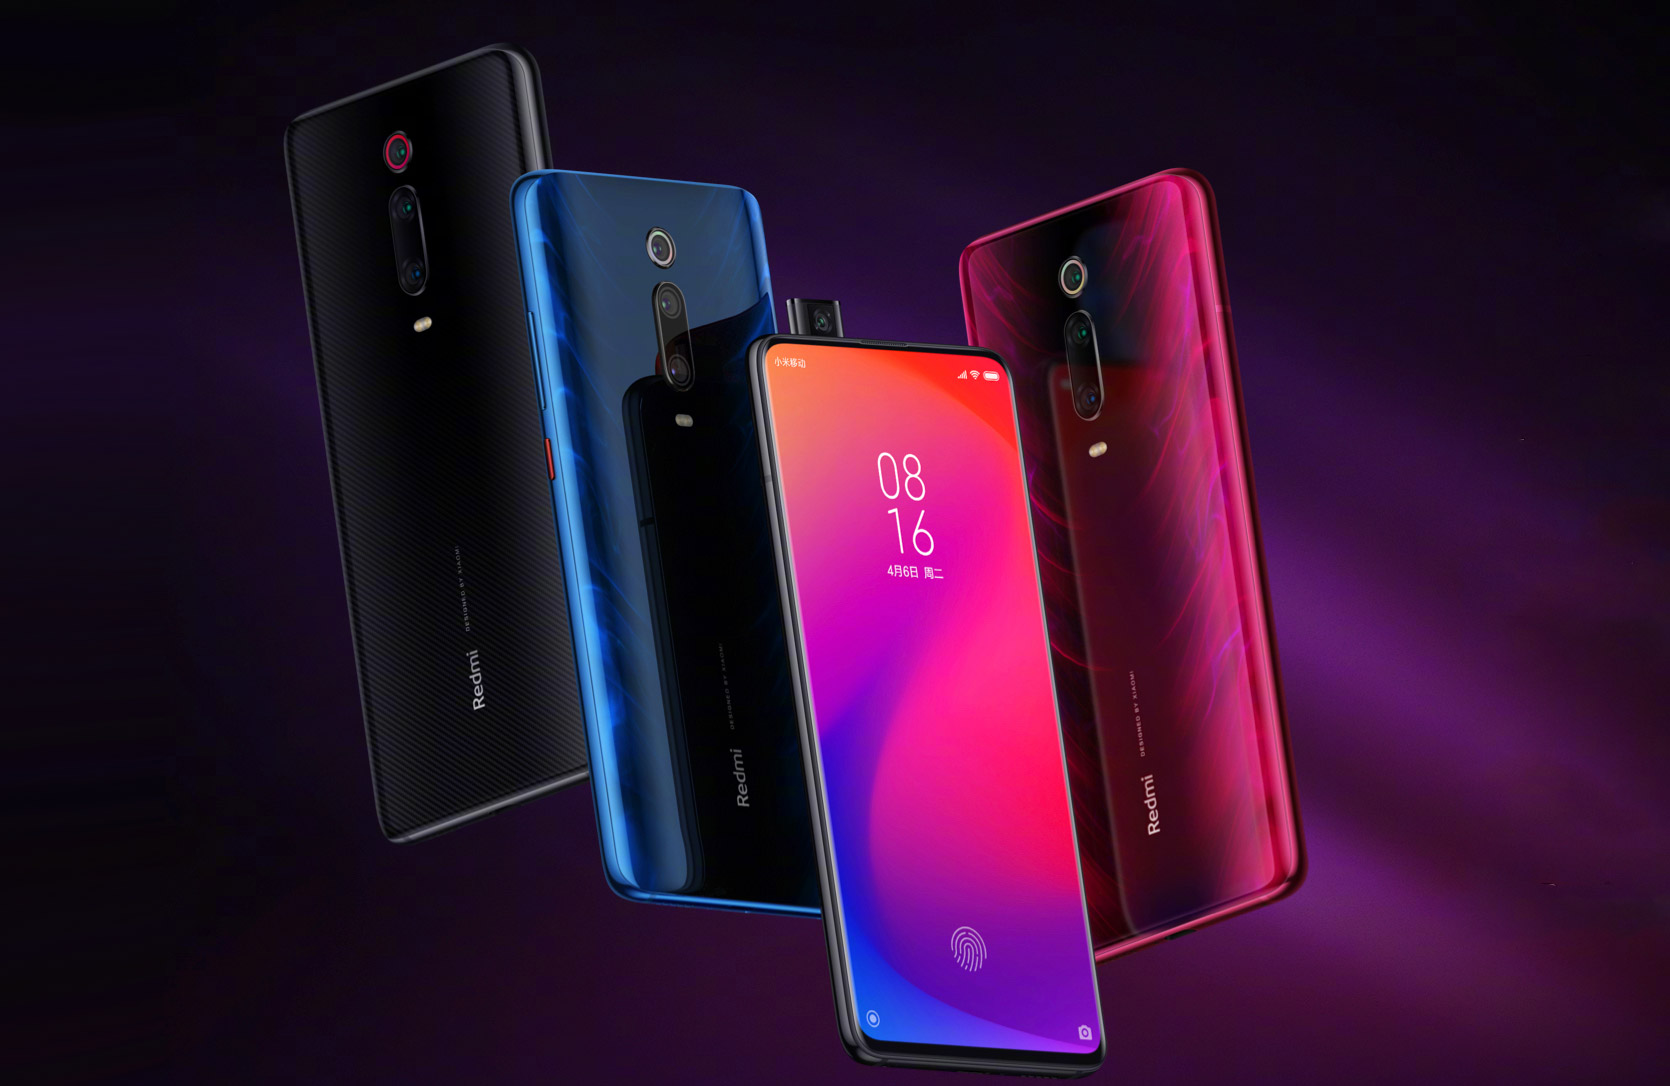 Stable MIUI 12 update hits the Xiaomi Redmi K20 and Mi 9T in India - Notebookcheck.net